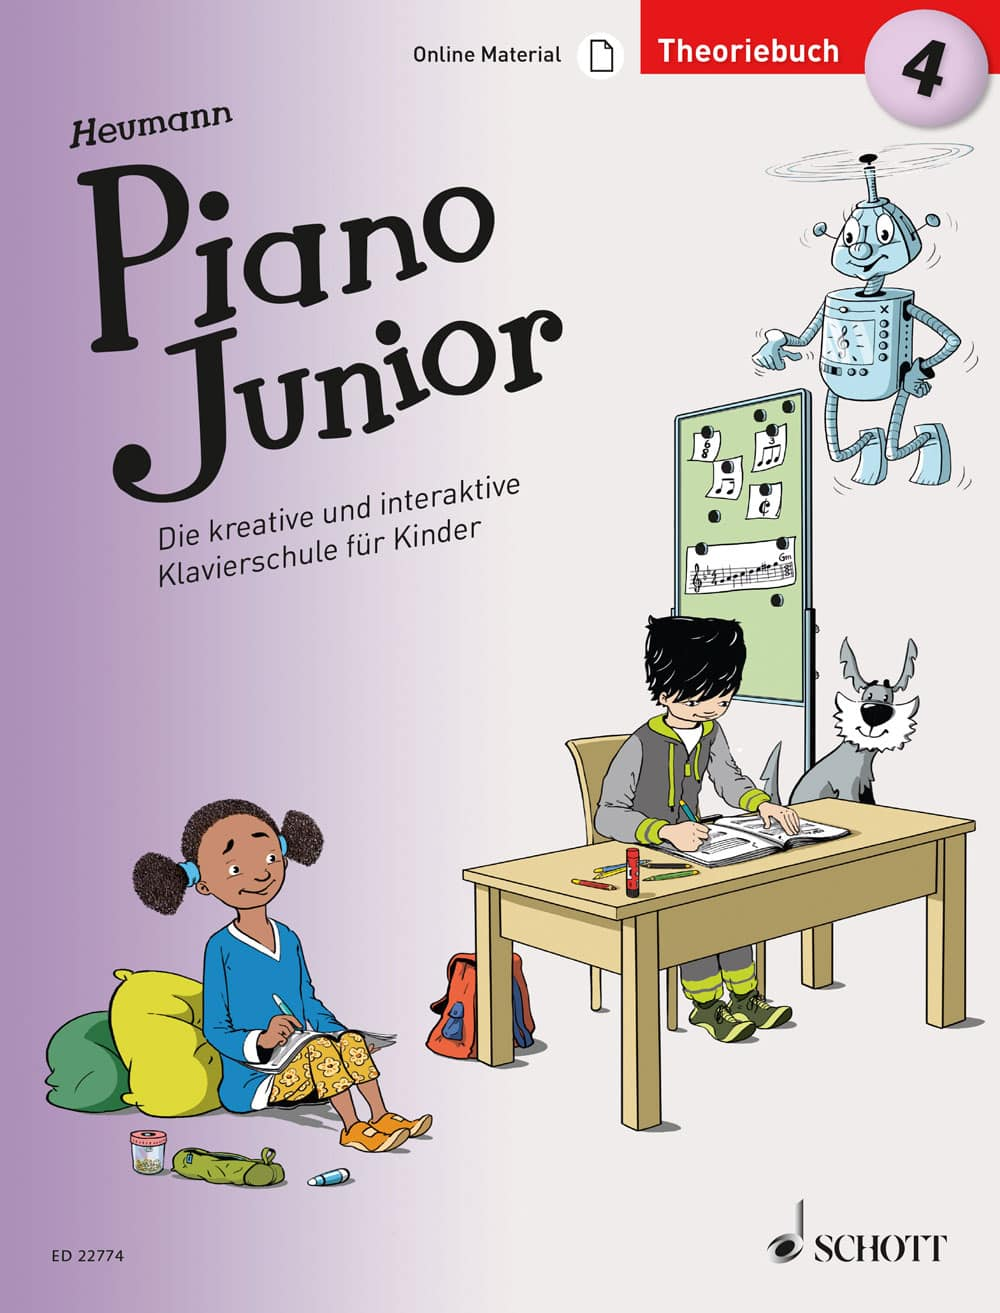 Piano Junior: Theoriebuch, Band 4